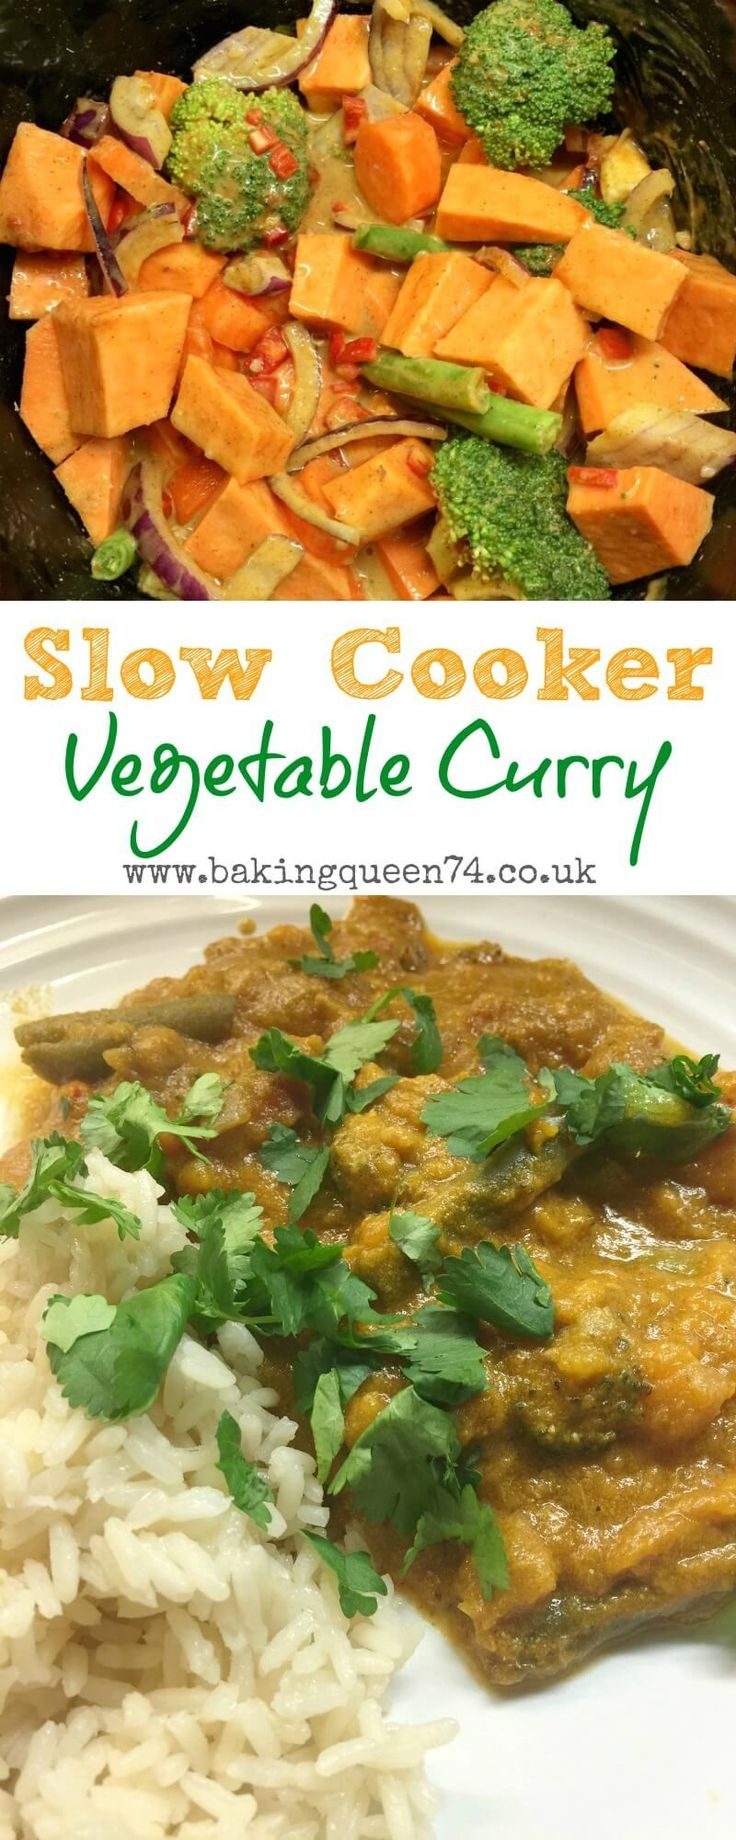 Slow Cooker Vegetable Curry recipe - use up your leftover vegetables in a tasty curry made in the slow cooker